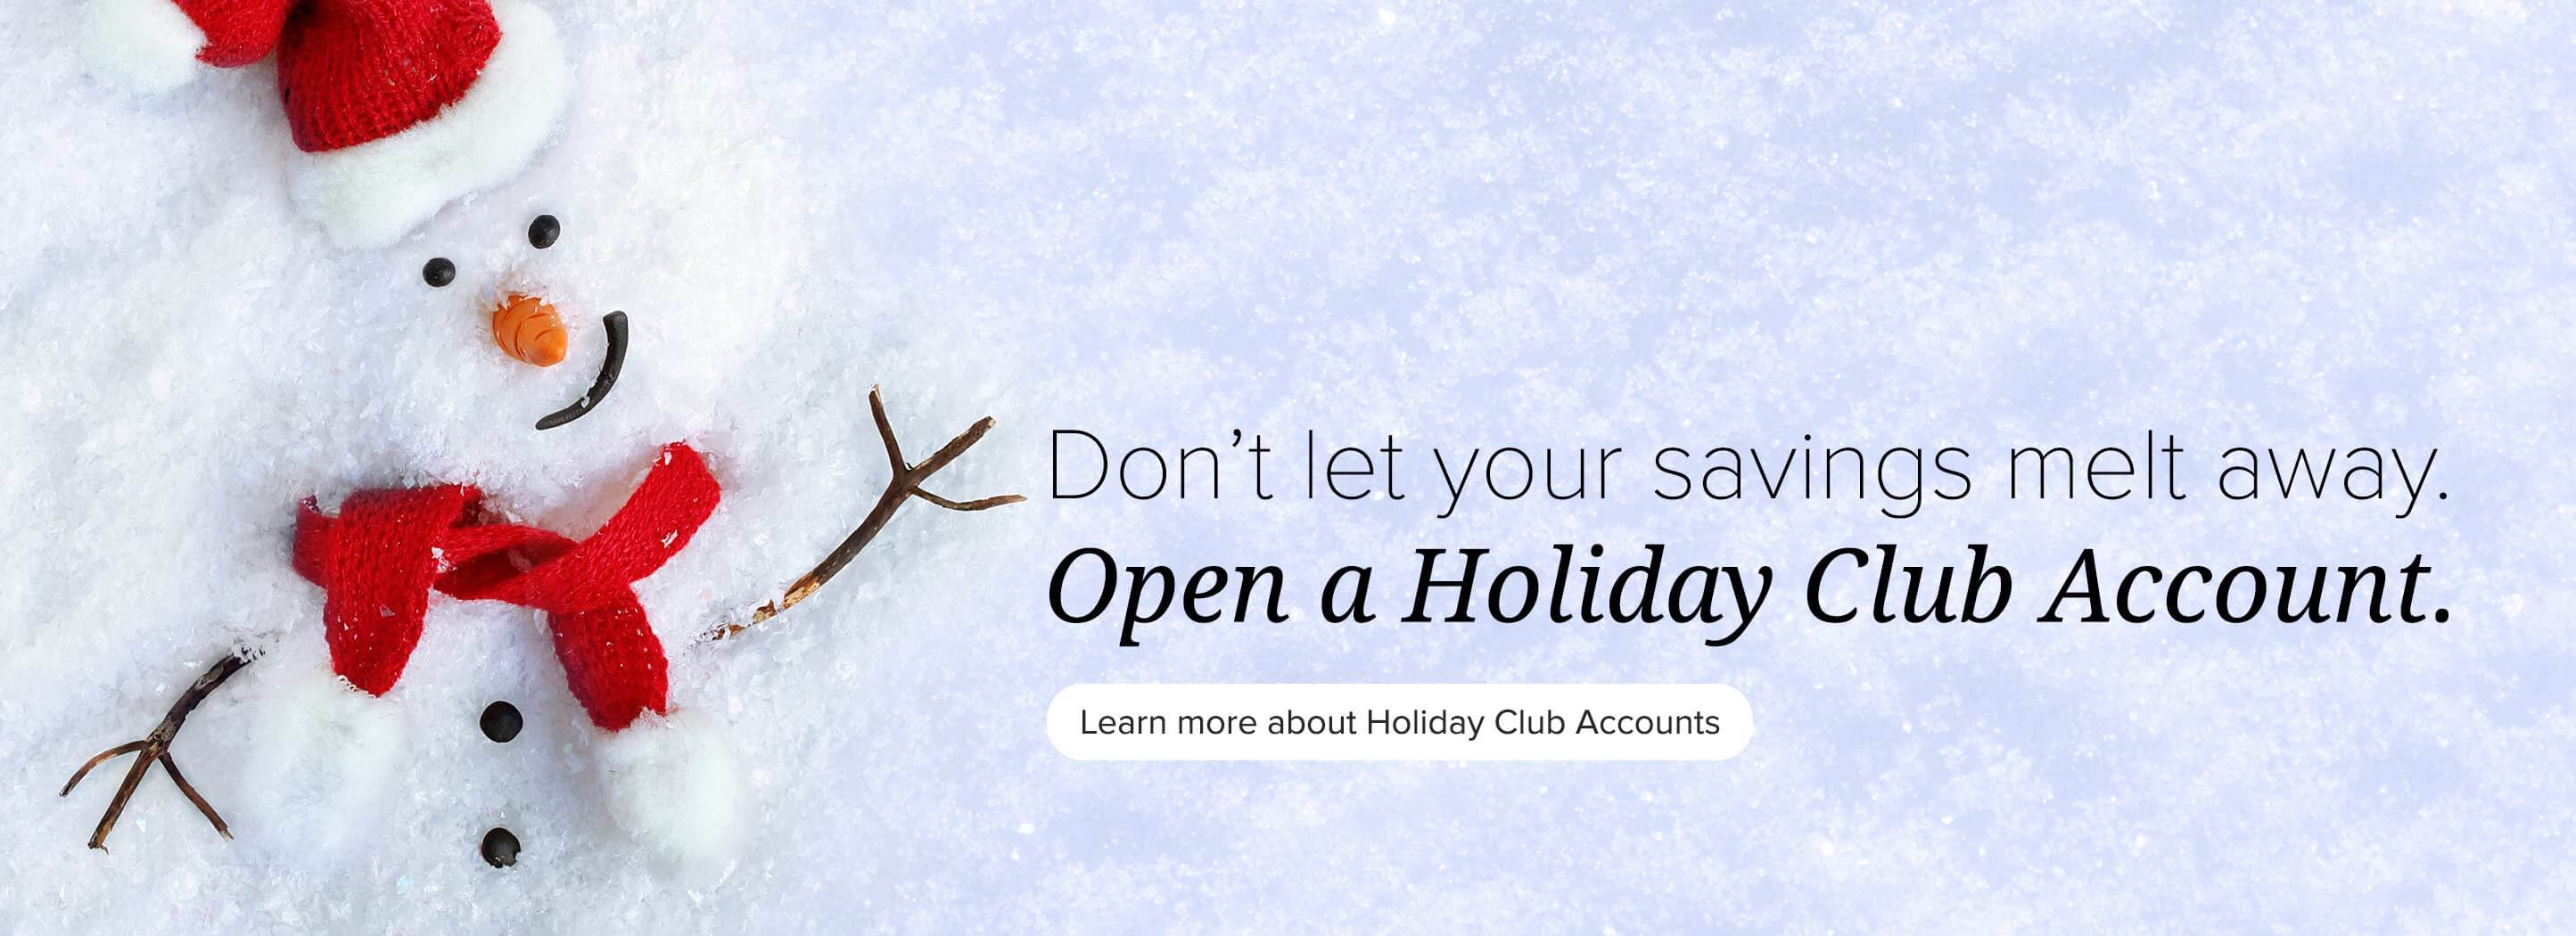 Don't let your savings melt away. Open a holiday club account. Learn more